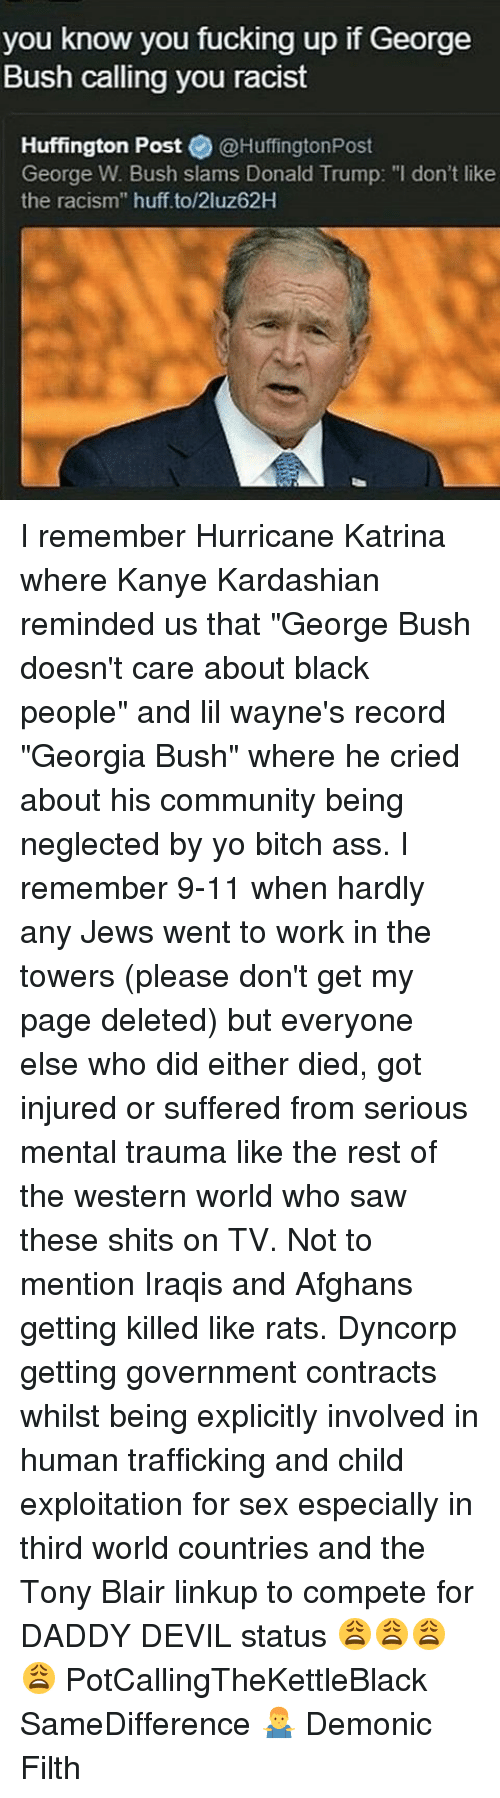 """Hurricane Katrina: you know you fucking up if George  Bush calling you racist  Huffington Post @Huffington Post  George W. Bush slams Donald Trump: """"I don't like  the racism"""" huff to/2luz62H I remember Hurricane Katrina where Kanye Kardashian reminded us that """"George Bush doesn't care about black people"""" and lil wayne's record """"Georgia Bush"""" where he cried about his community being neglected by yo bitch ass. I remember 9-11 when hardly any Jews went to work in the towers (please don't get my page deleted) but everyone else who did either died, got injured or suffered from serious mental trauma like the rest of the western world who saw these shits on TV. Not to mention Iraqis and Afghans getting killed like rats. Dyncorp getting government contracts whilst being explicitly involved in human trafficking and child exploitation for sex especially in third world countries and the Tony Blair linkup to compete for DADDY DEVIL status 😩😩😩😩 PotCallingTheKettleBlack SameDifference 🤷♂️ Demonic Filth"""